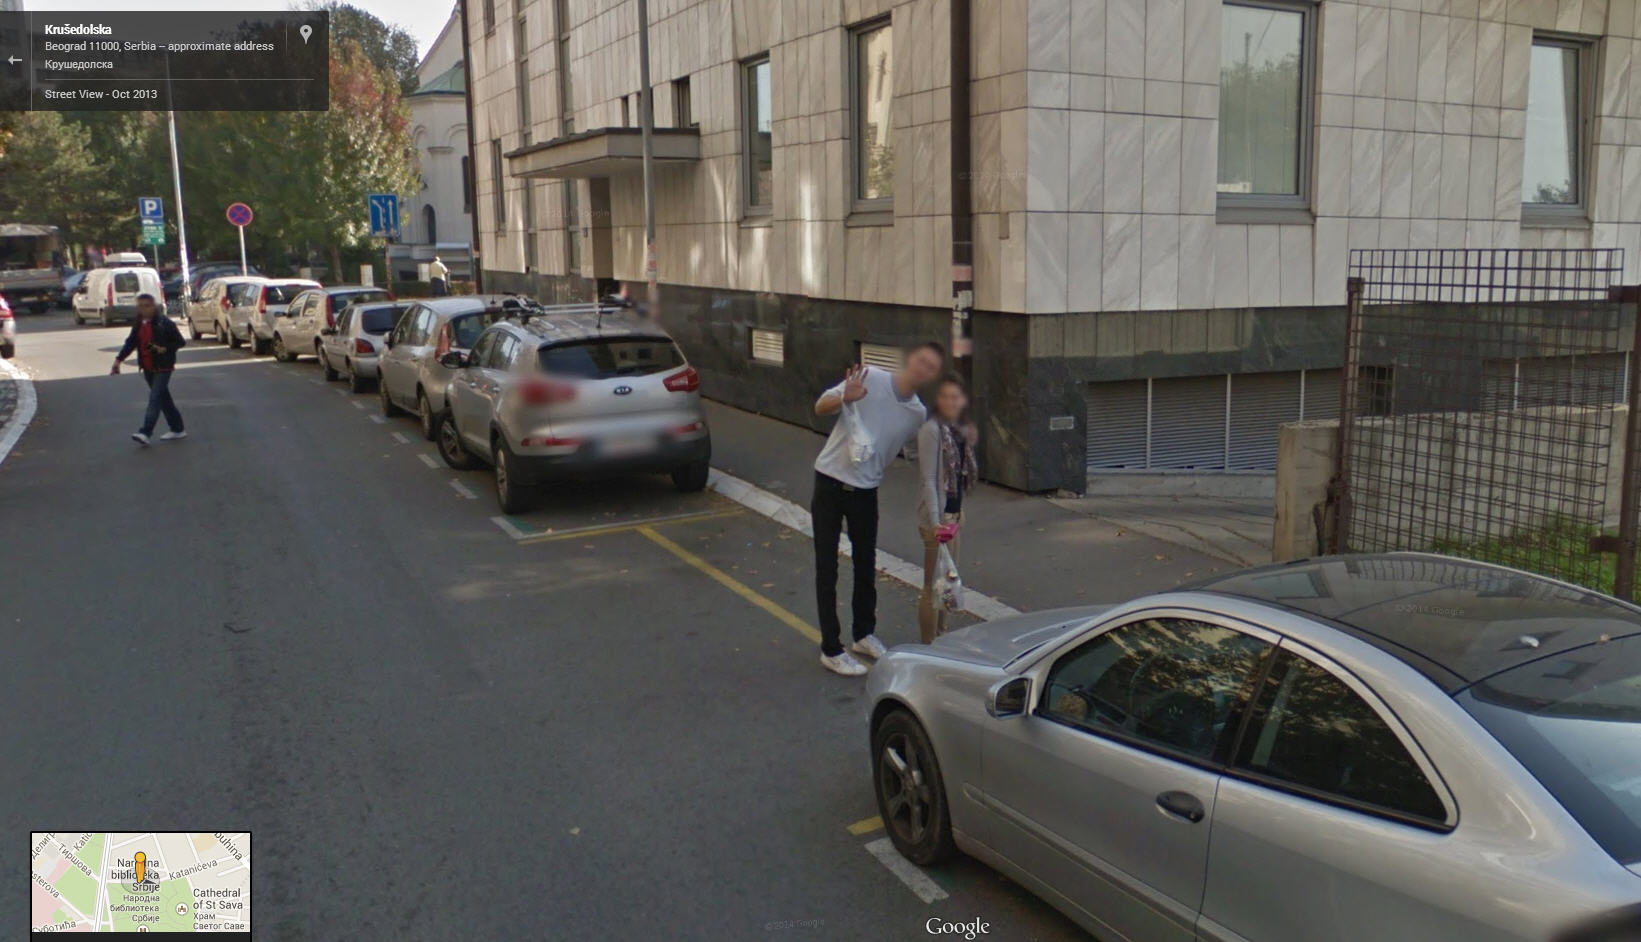 This is a great Google Street View Pose!